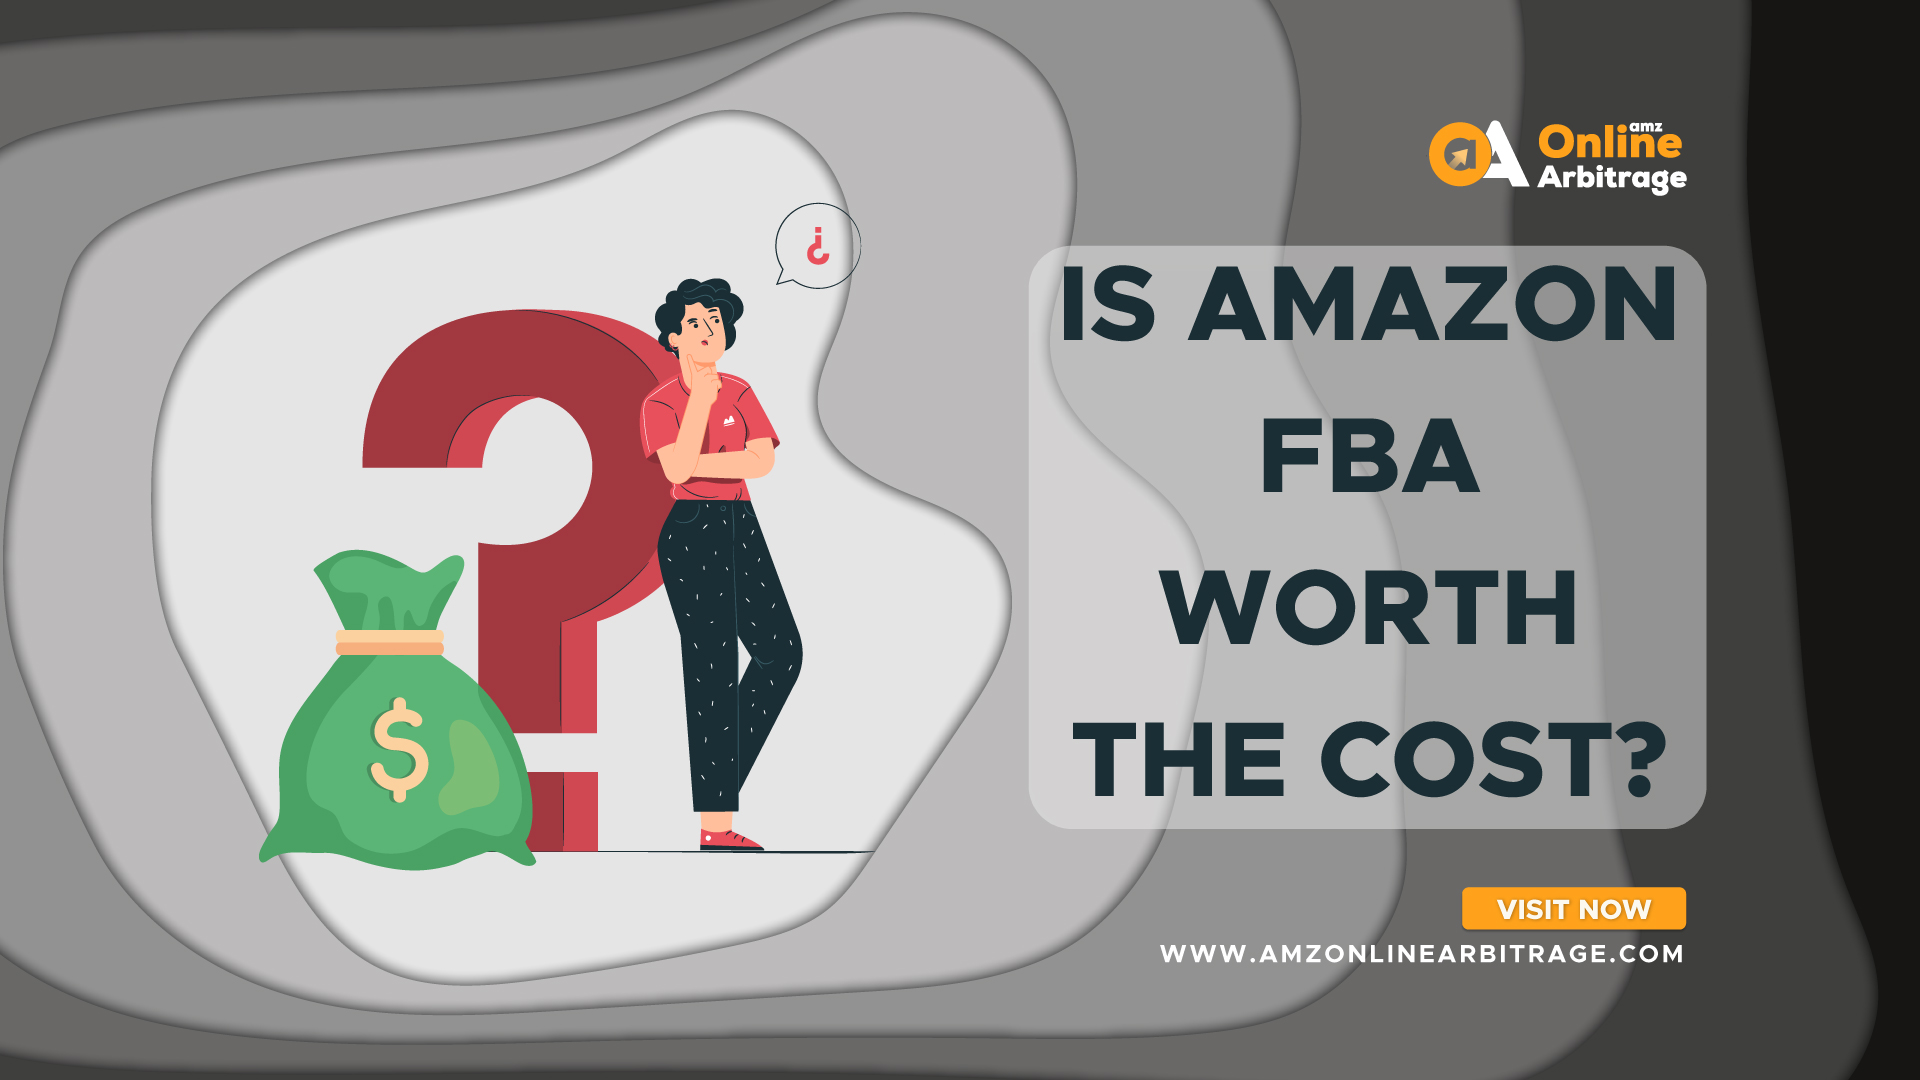 IS AMAZON FBA WORTH THE COST?